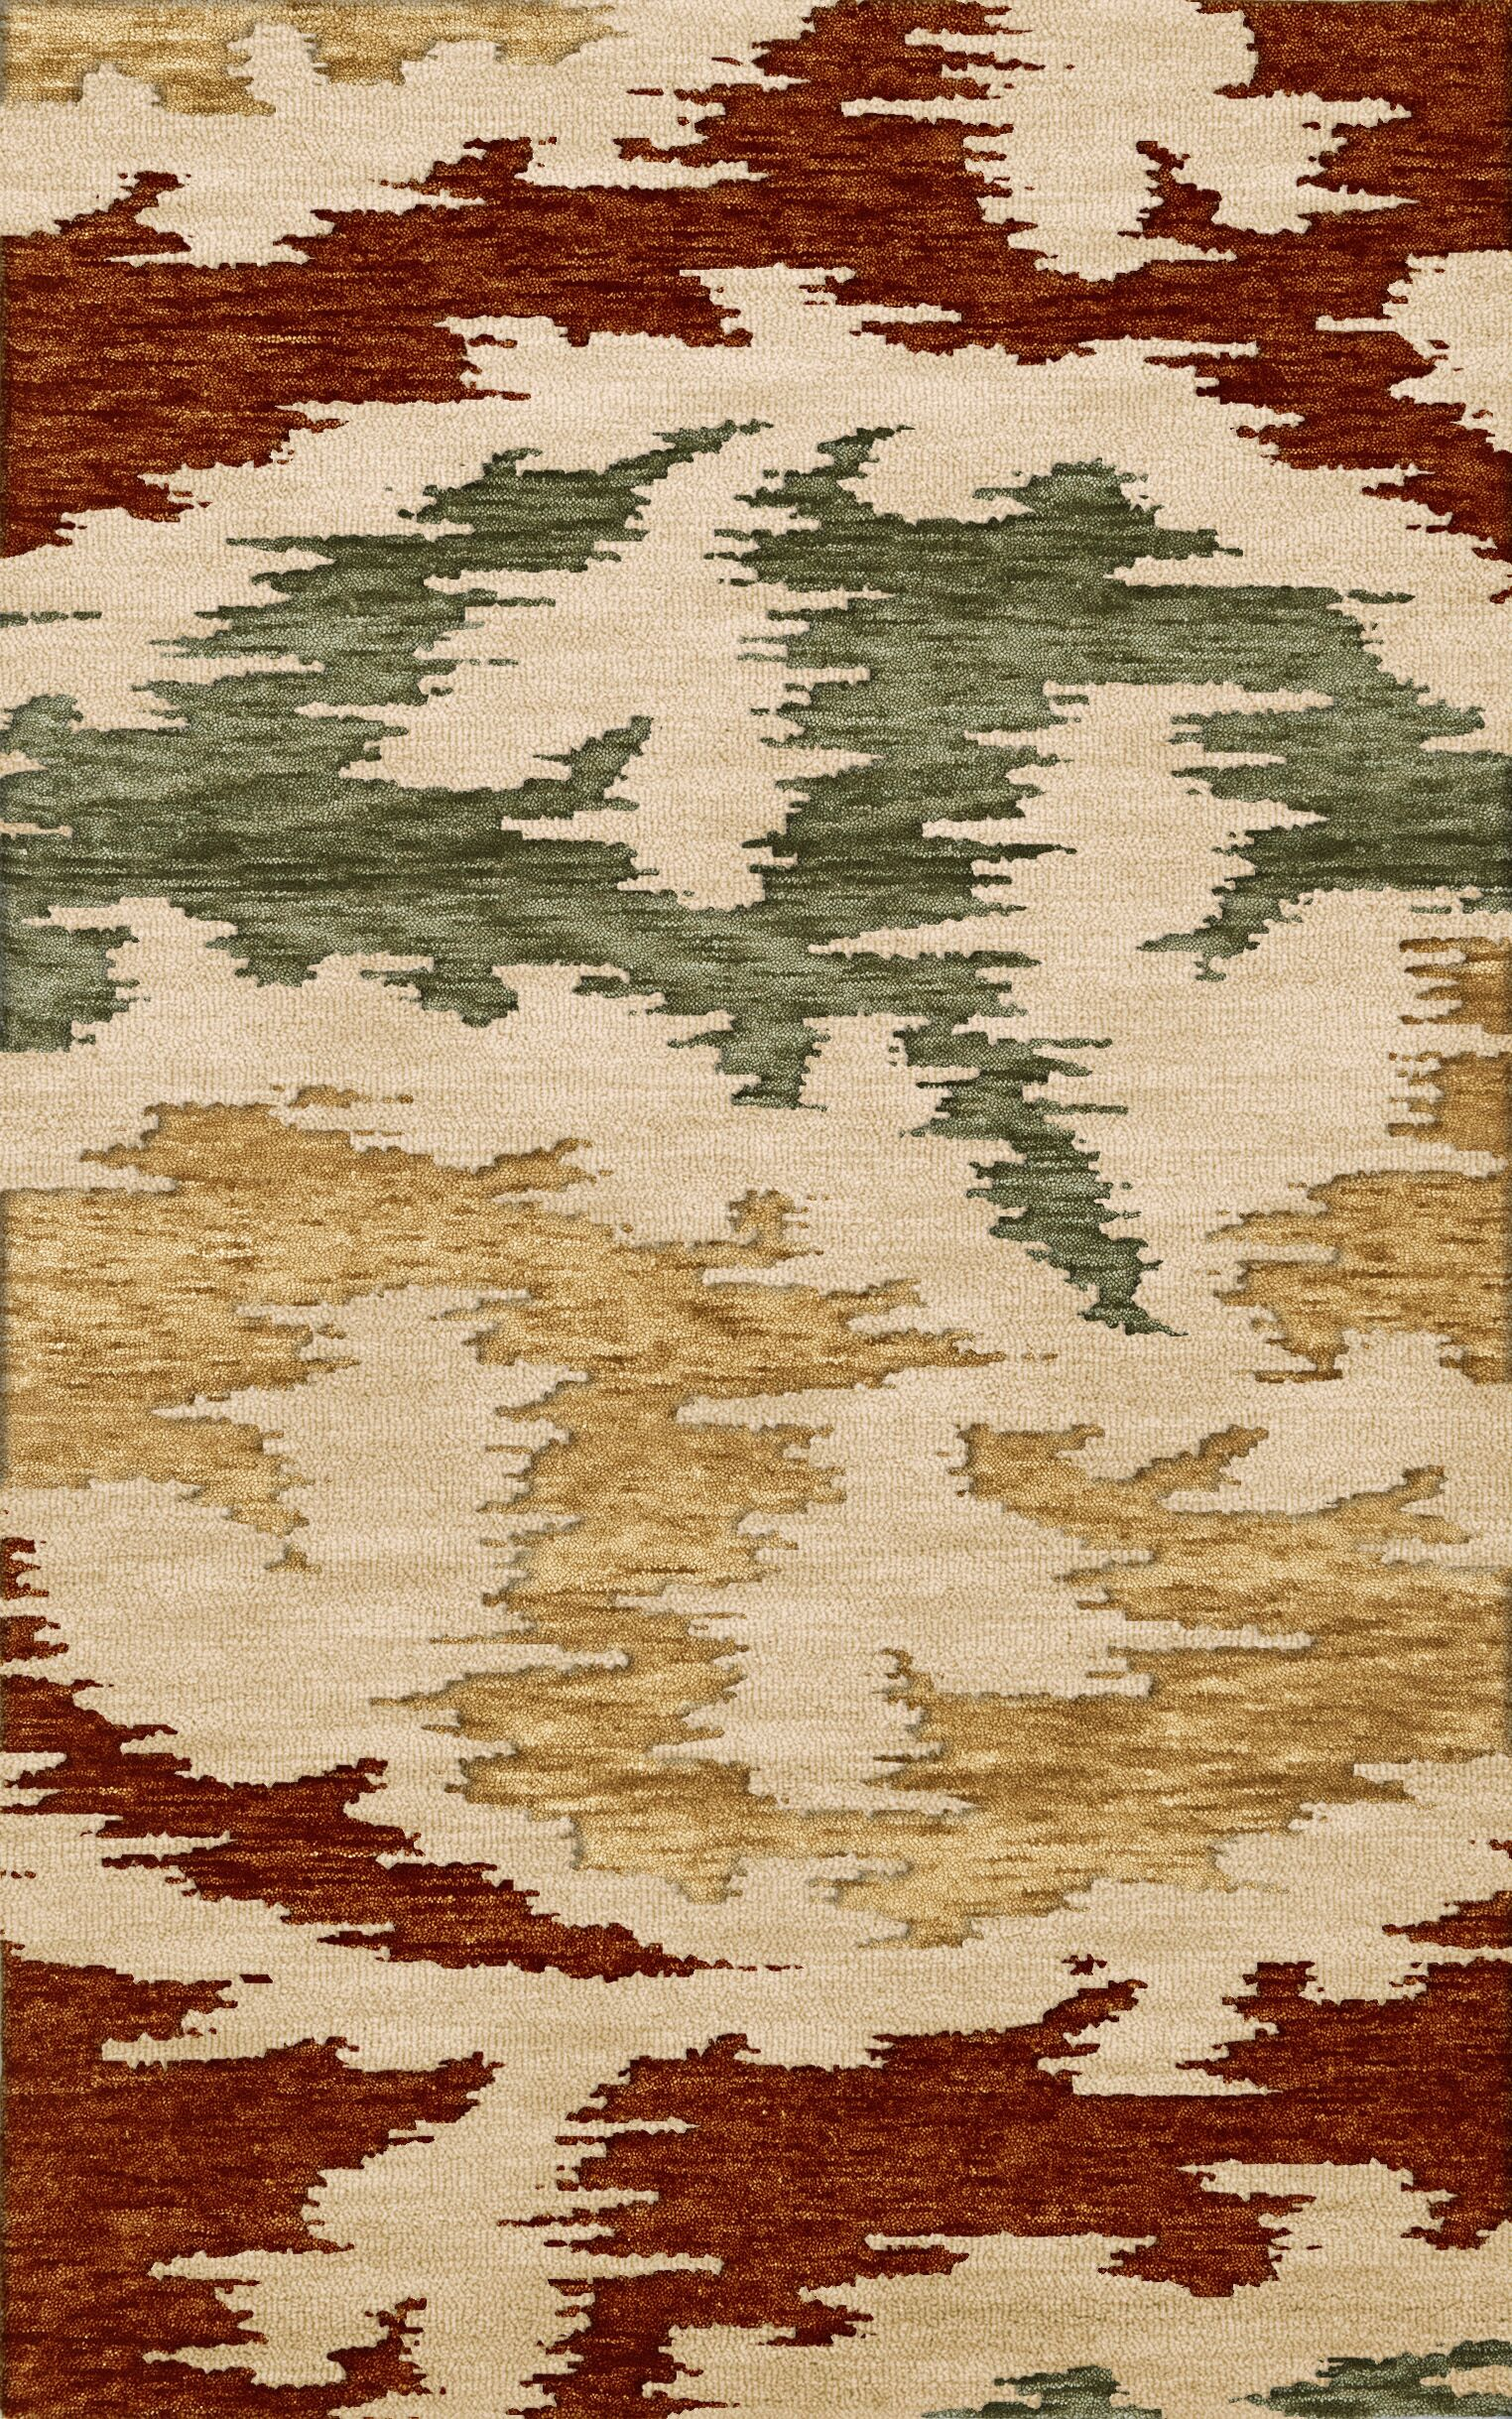 Bella Machine Woven Wool Brown/Green/Beige Area Rug Rug Size: Square 10'